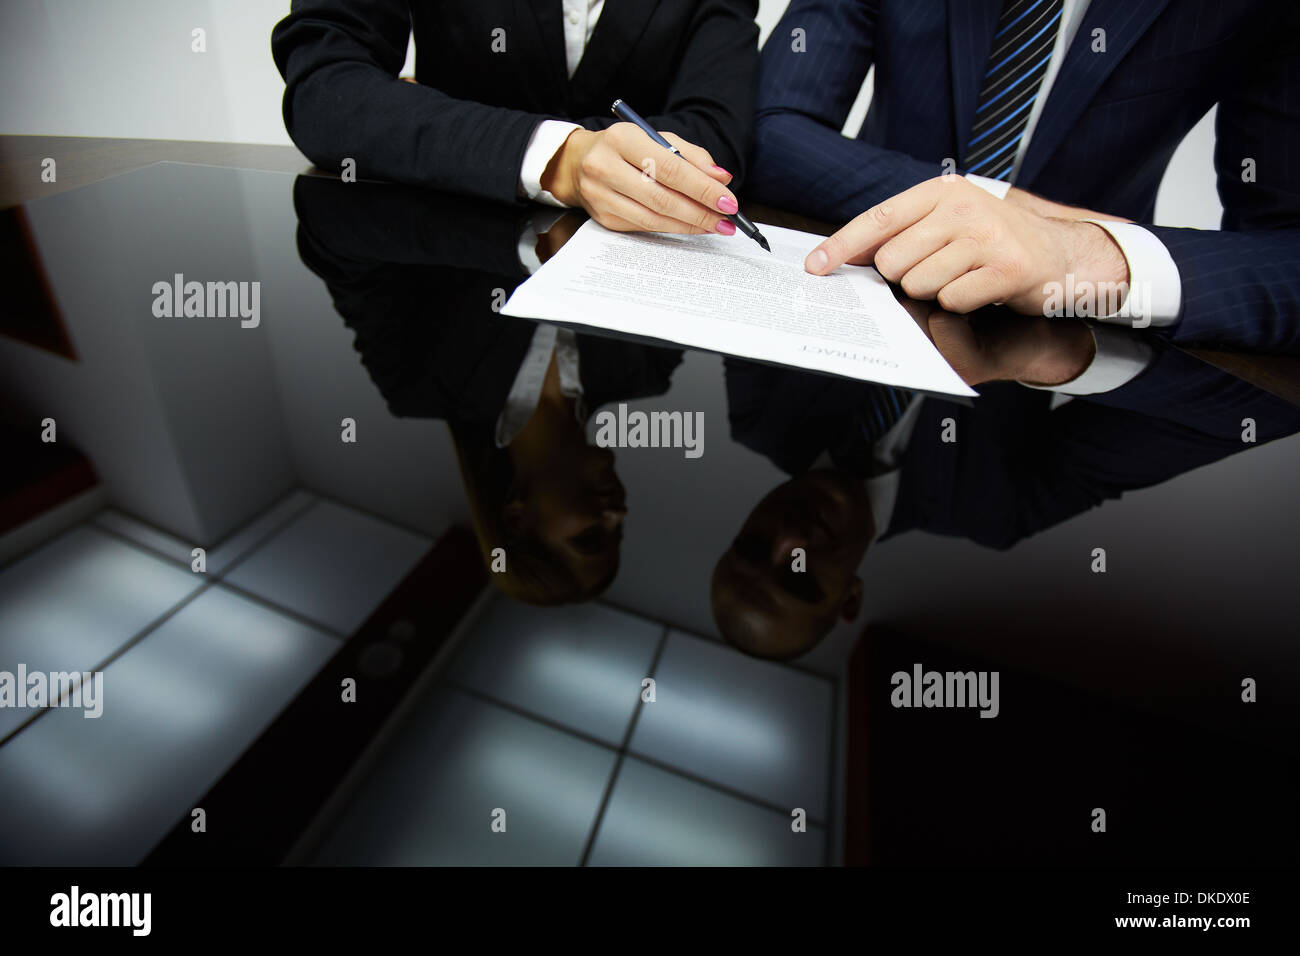 Image of human hands during reading contract - Stock Image